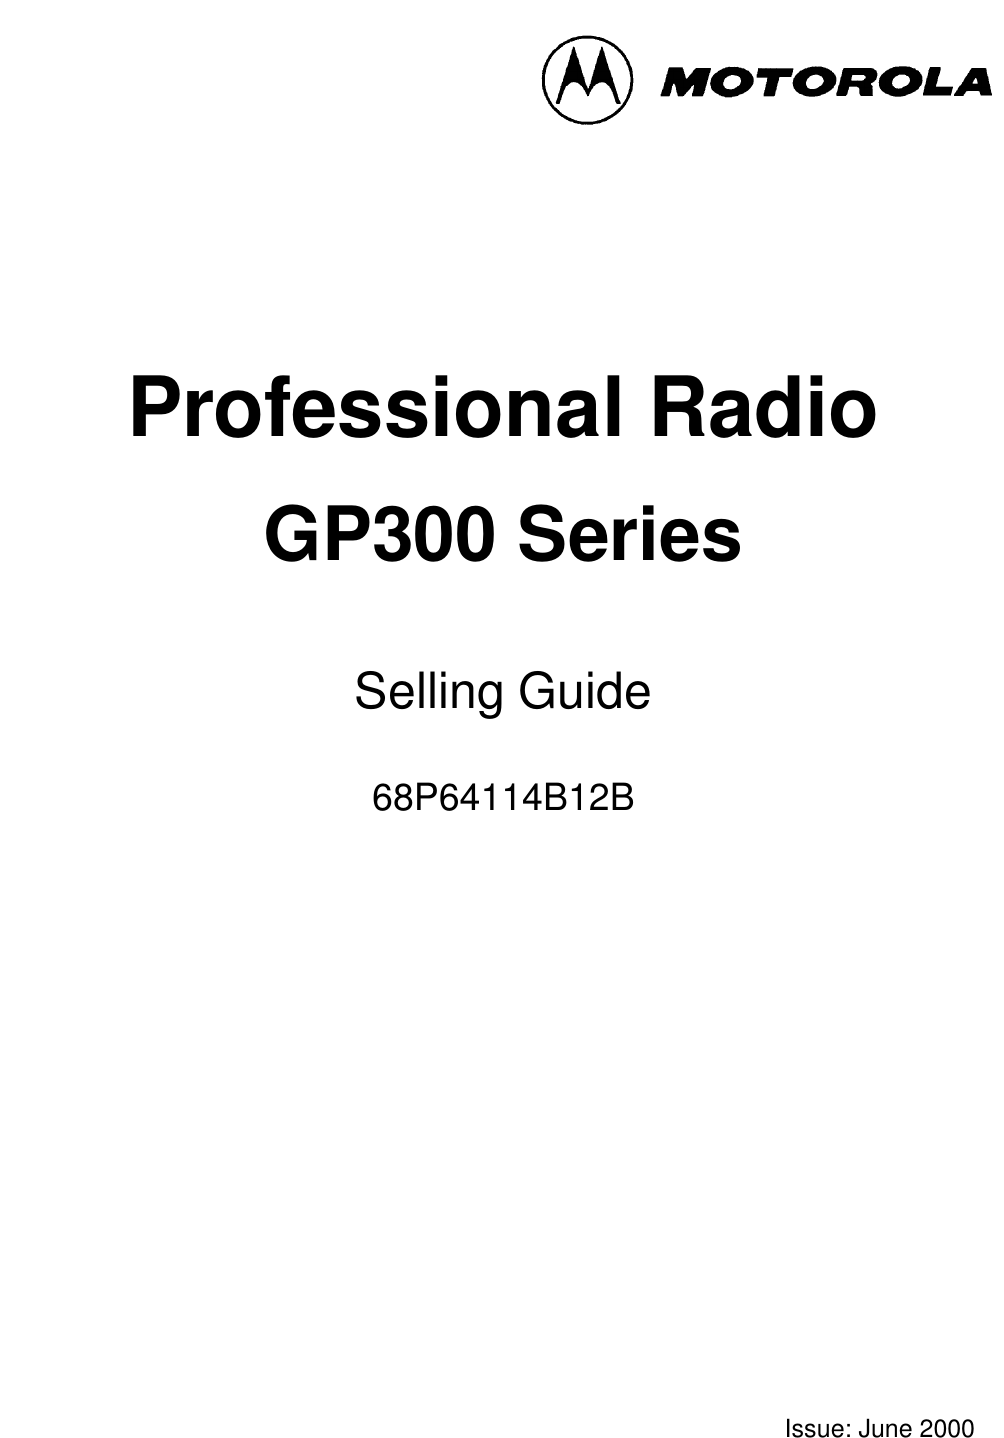 Motorola 68P64114B12B Users Manual GP300 Series